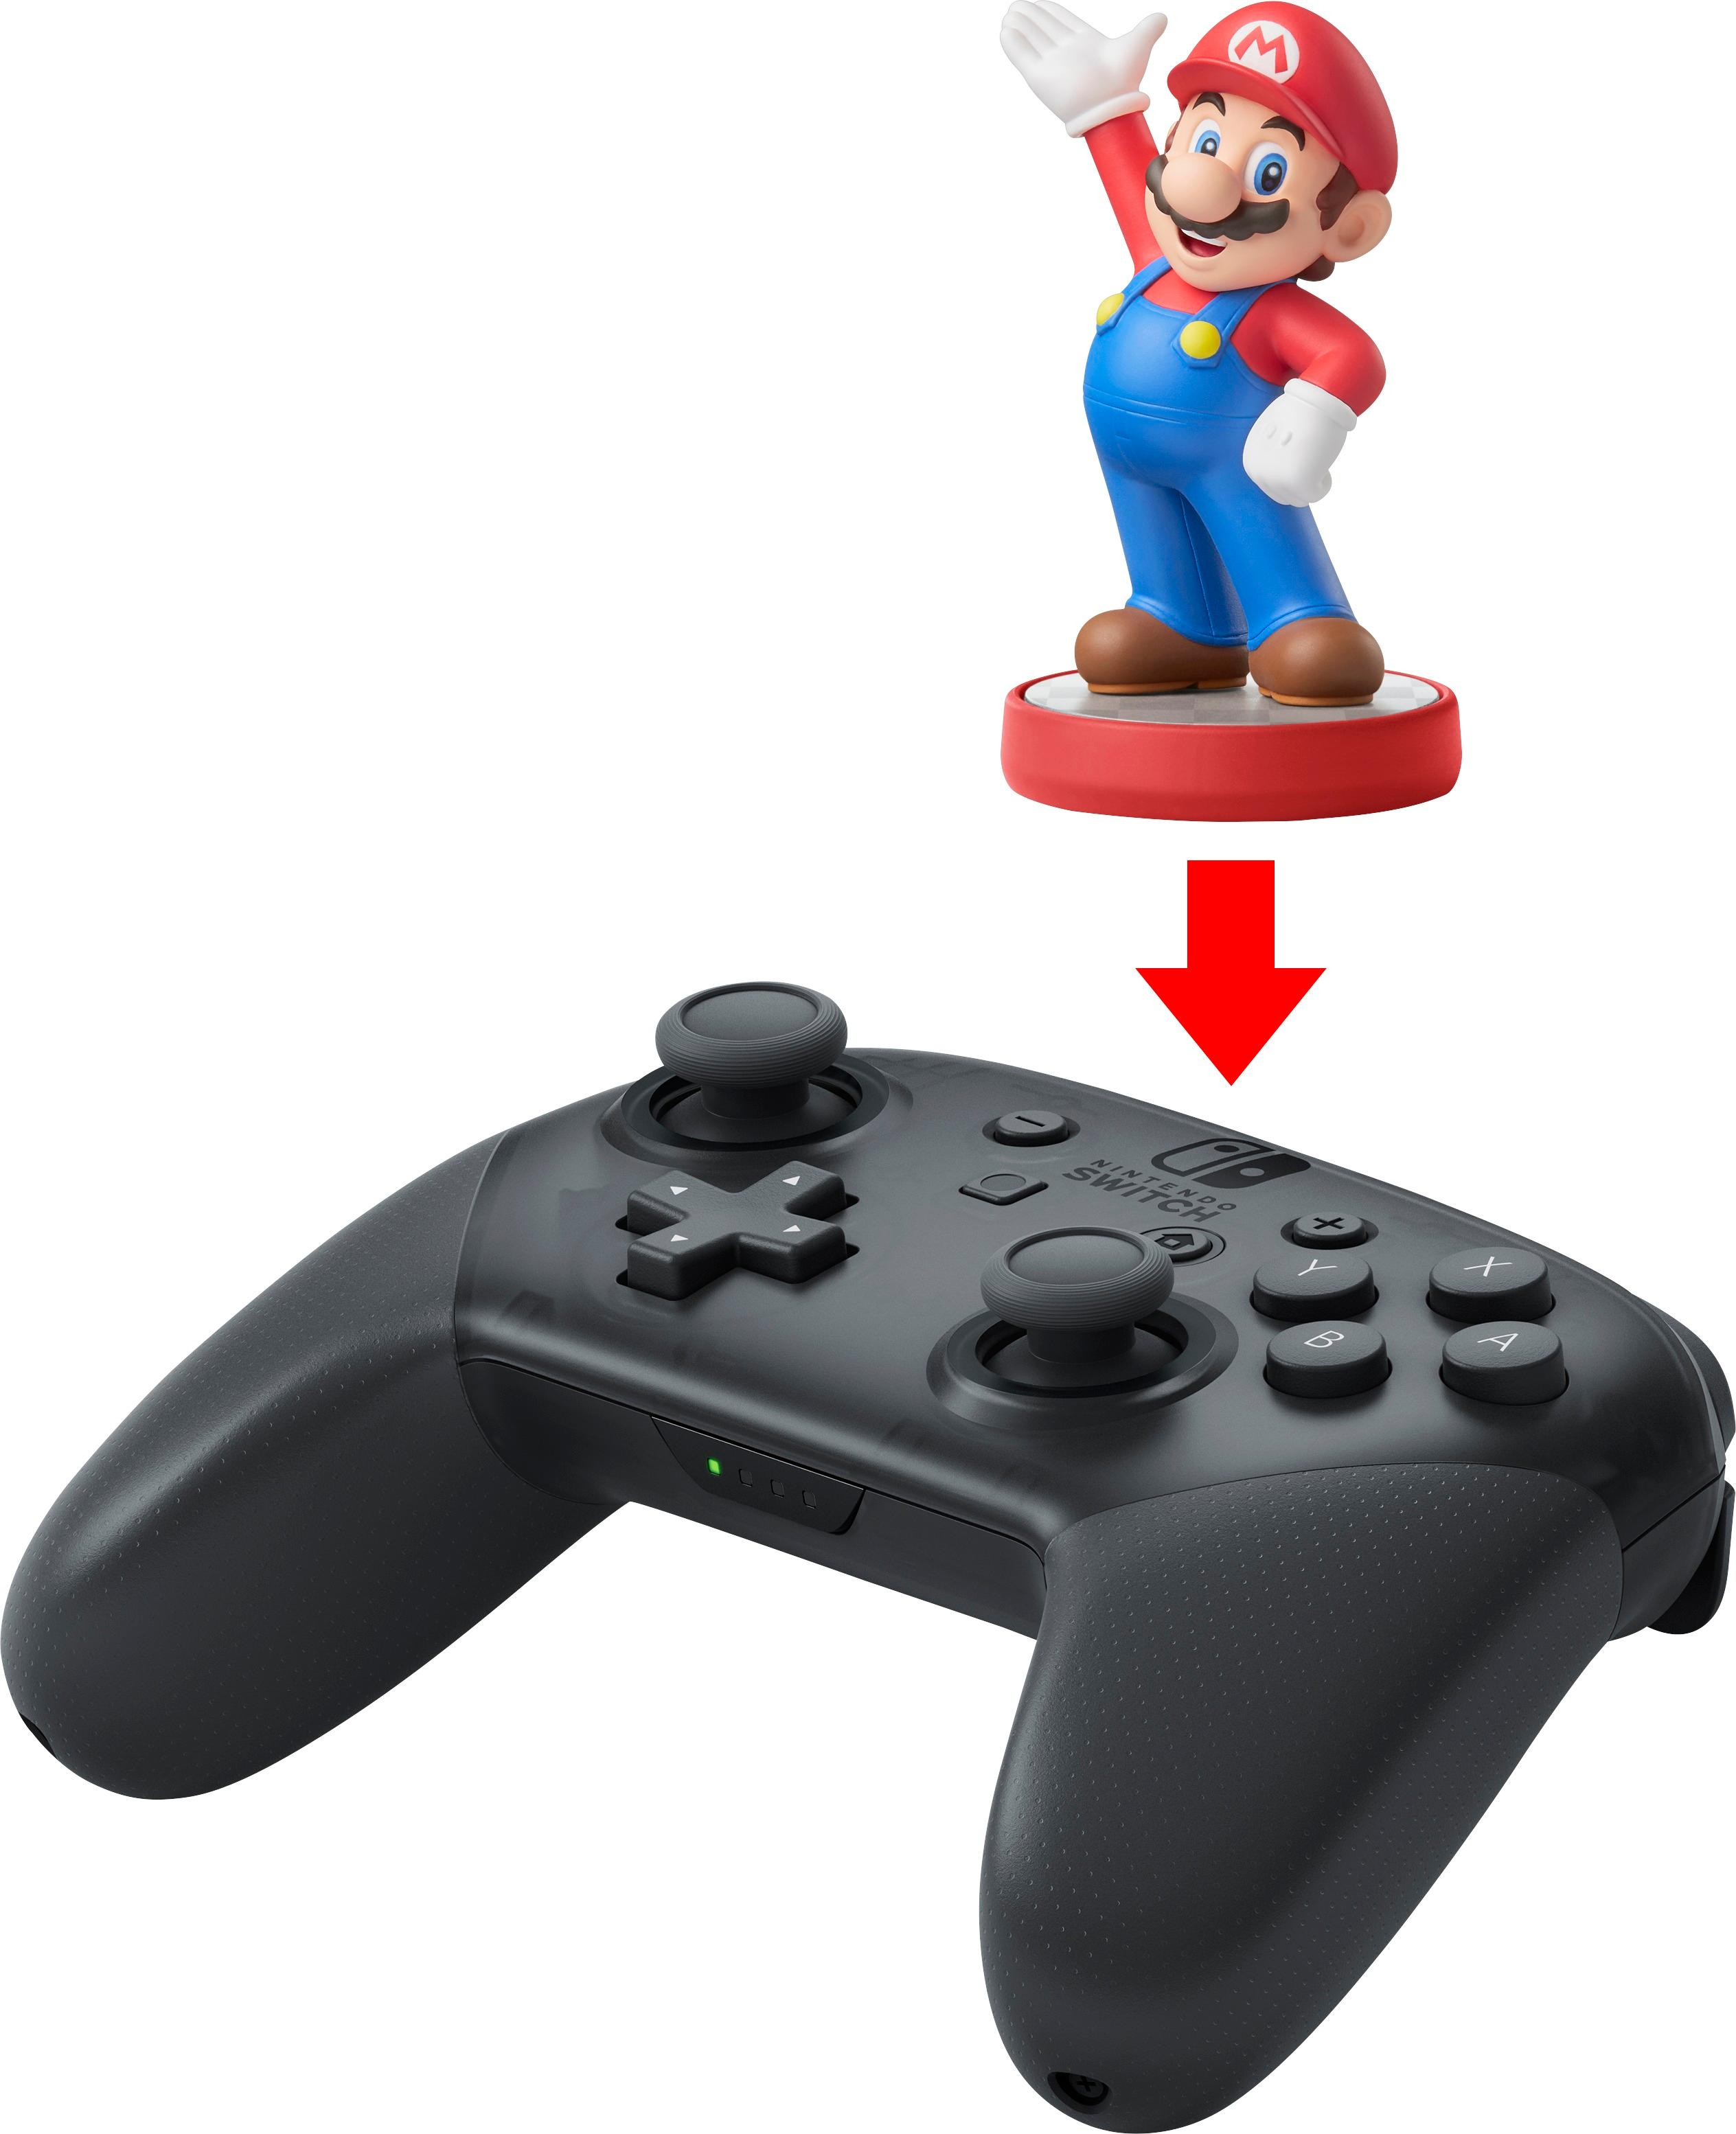 A Mario amiibo sitting atop the location of the Pro Controller's NFC reader.